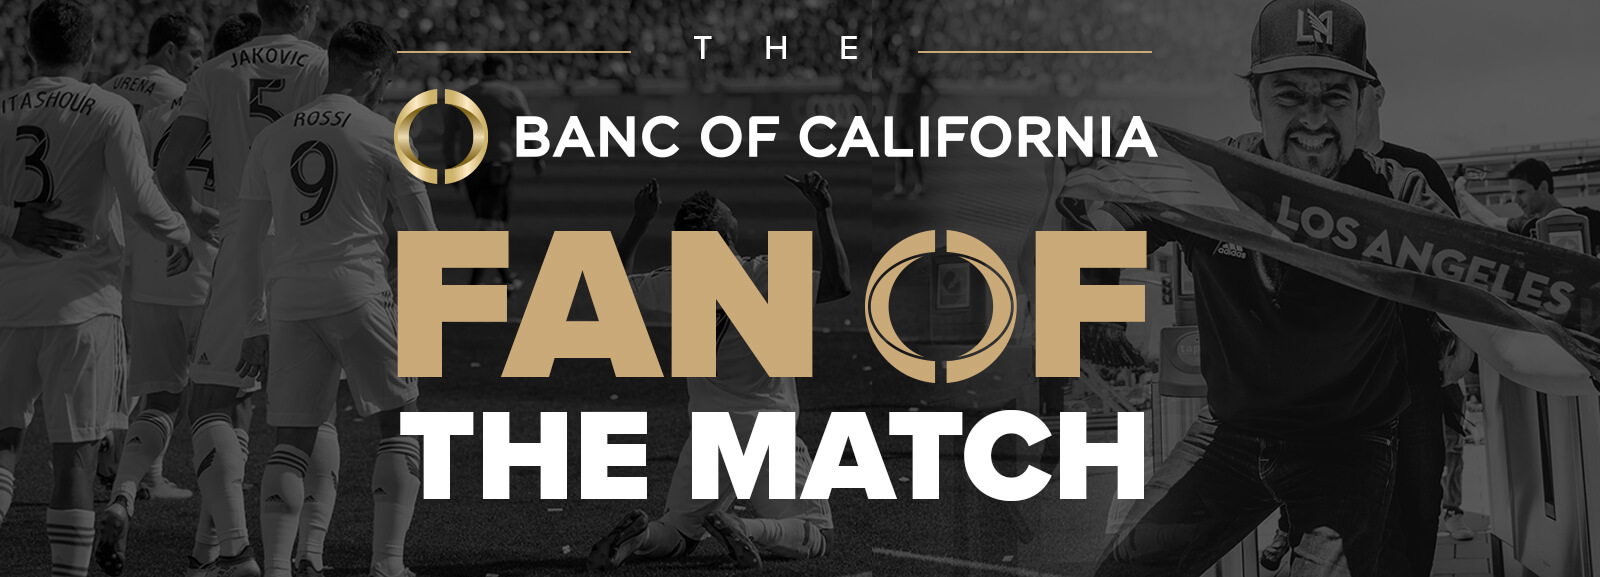 fan-of-the-match-web-page-header